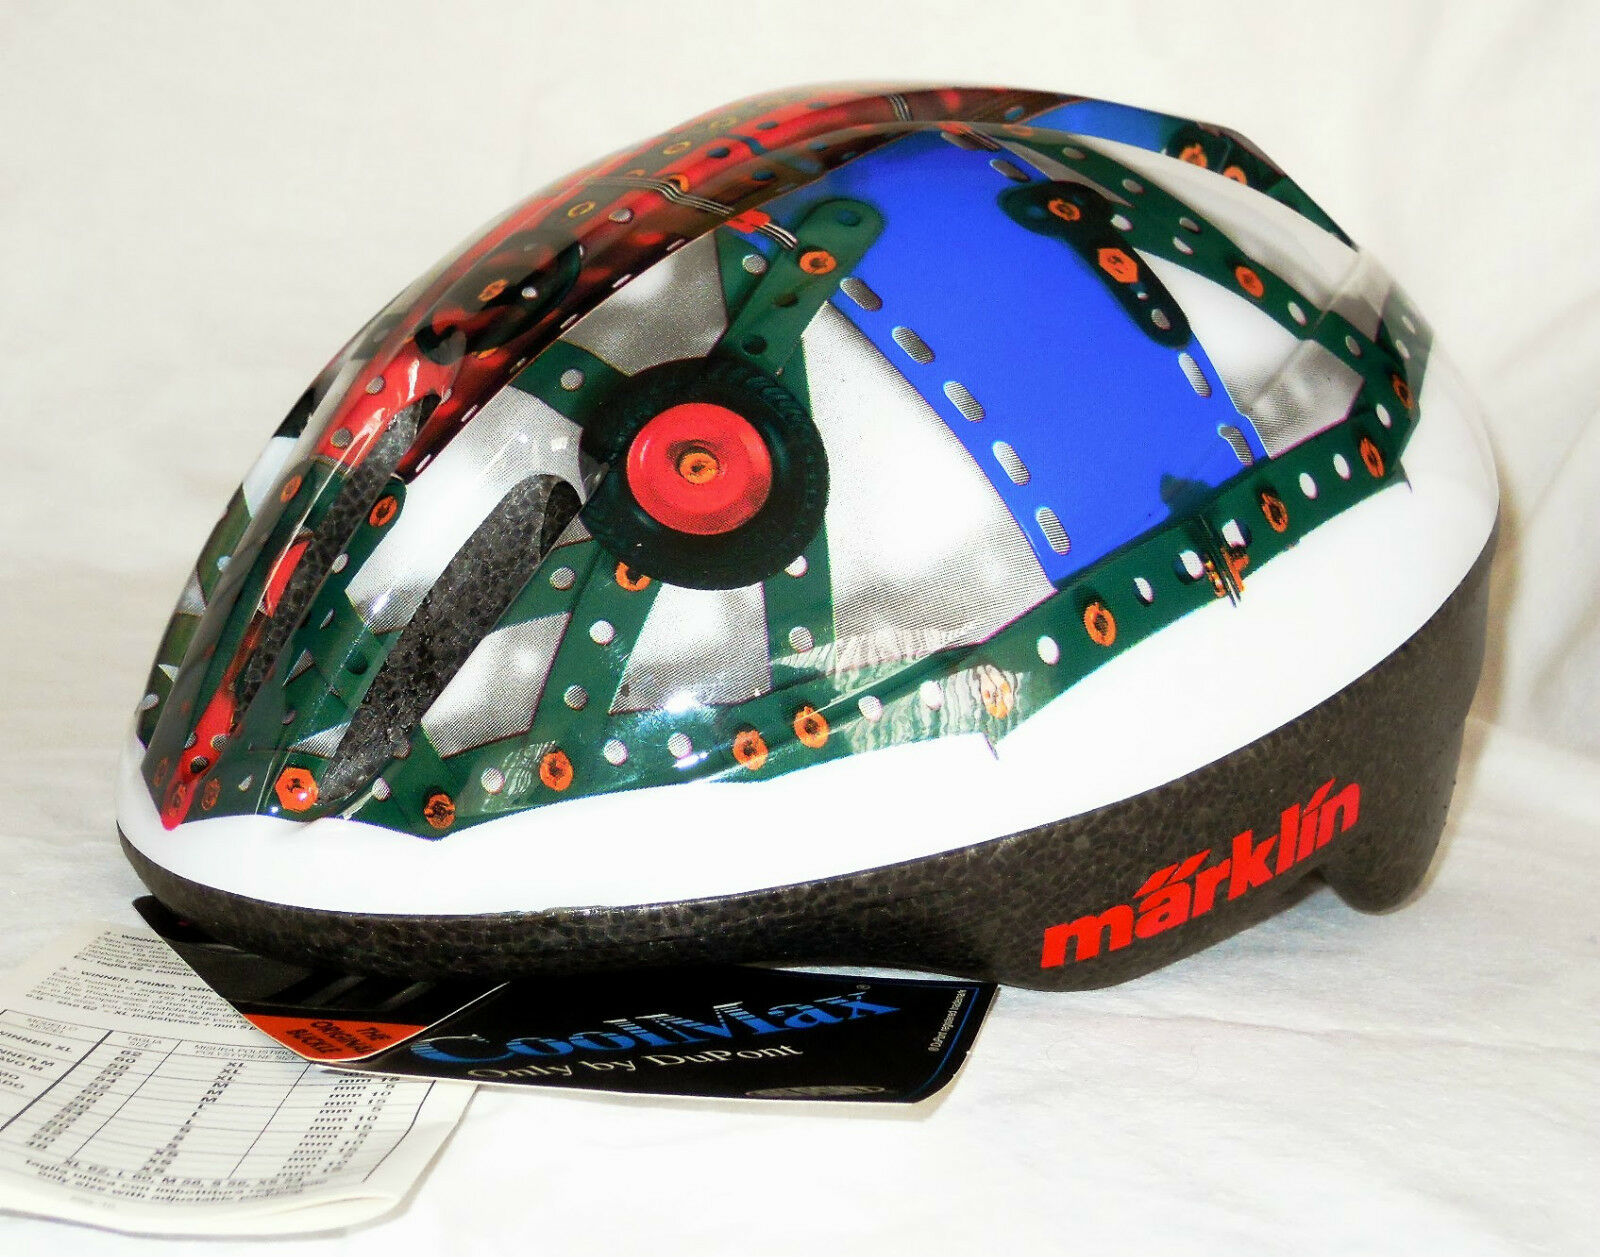 Märklin Fahrrad Helmet in Metal Construction Kit-Design, Größe  250, M, NEW